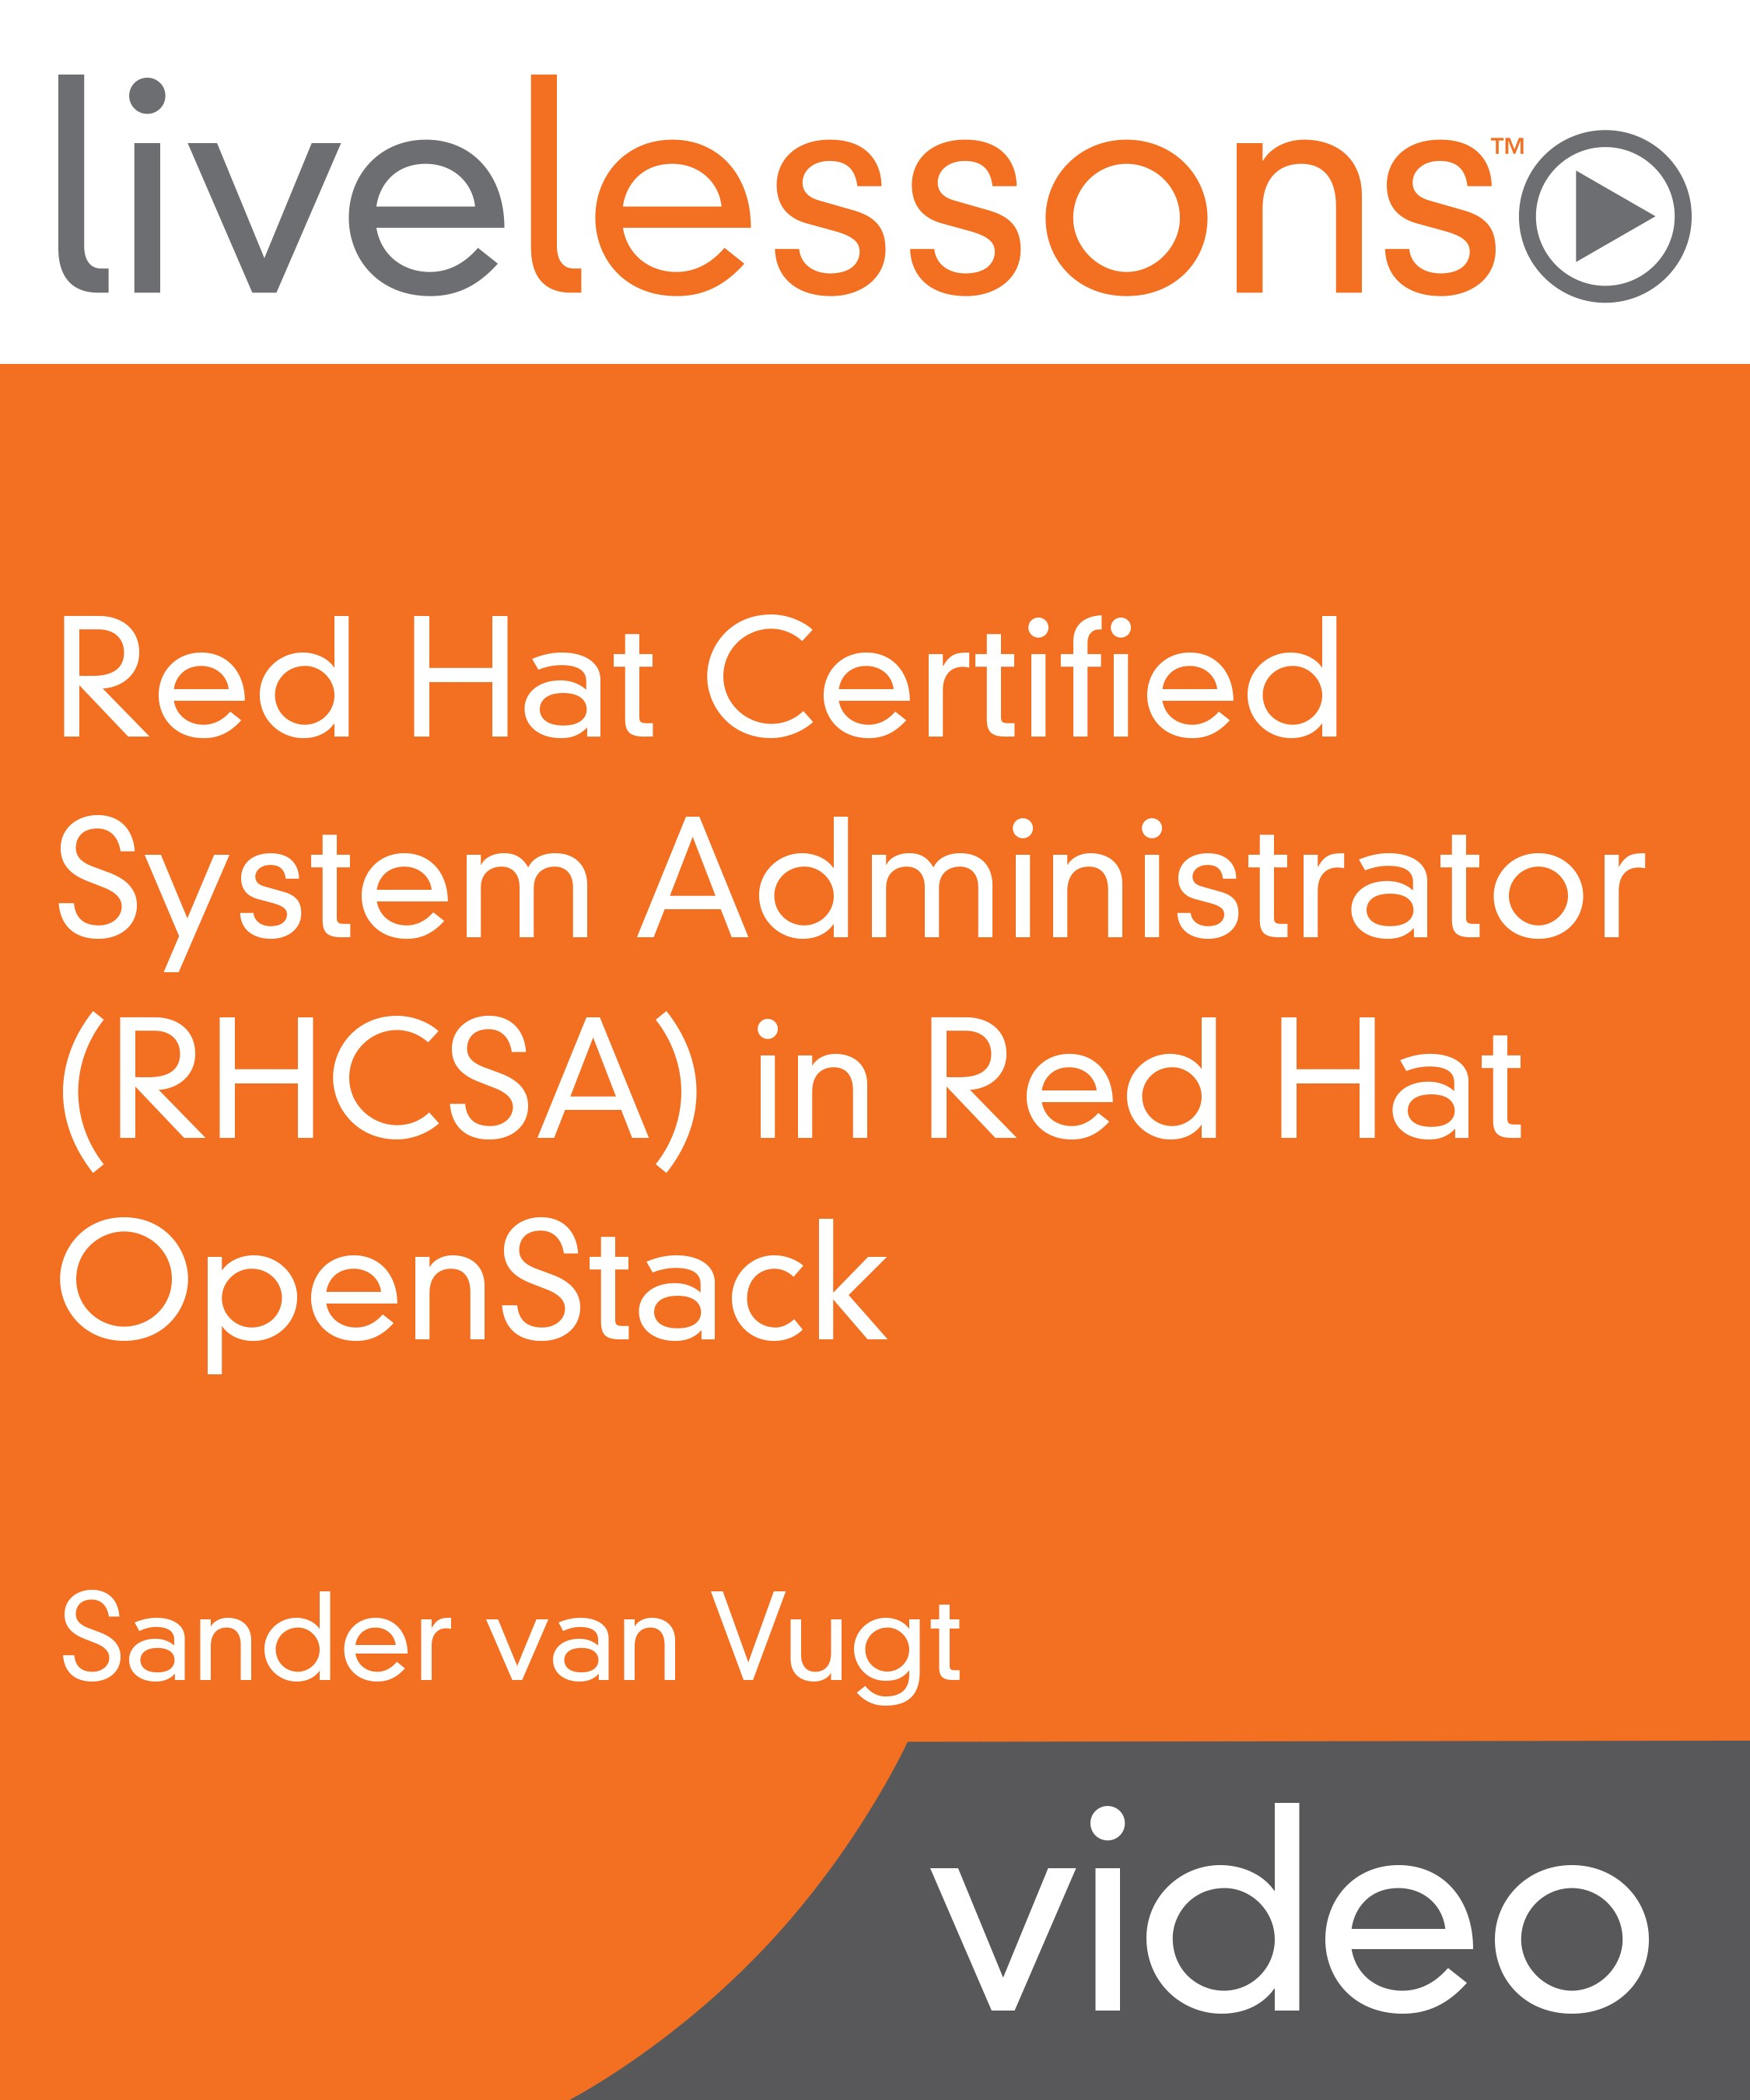 Red Hat Certified System Administrator (RHCSA) in Red Hat OpenStack LiveLessons